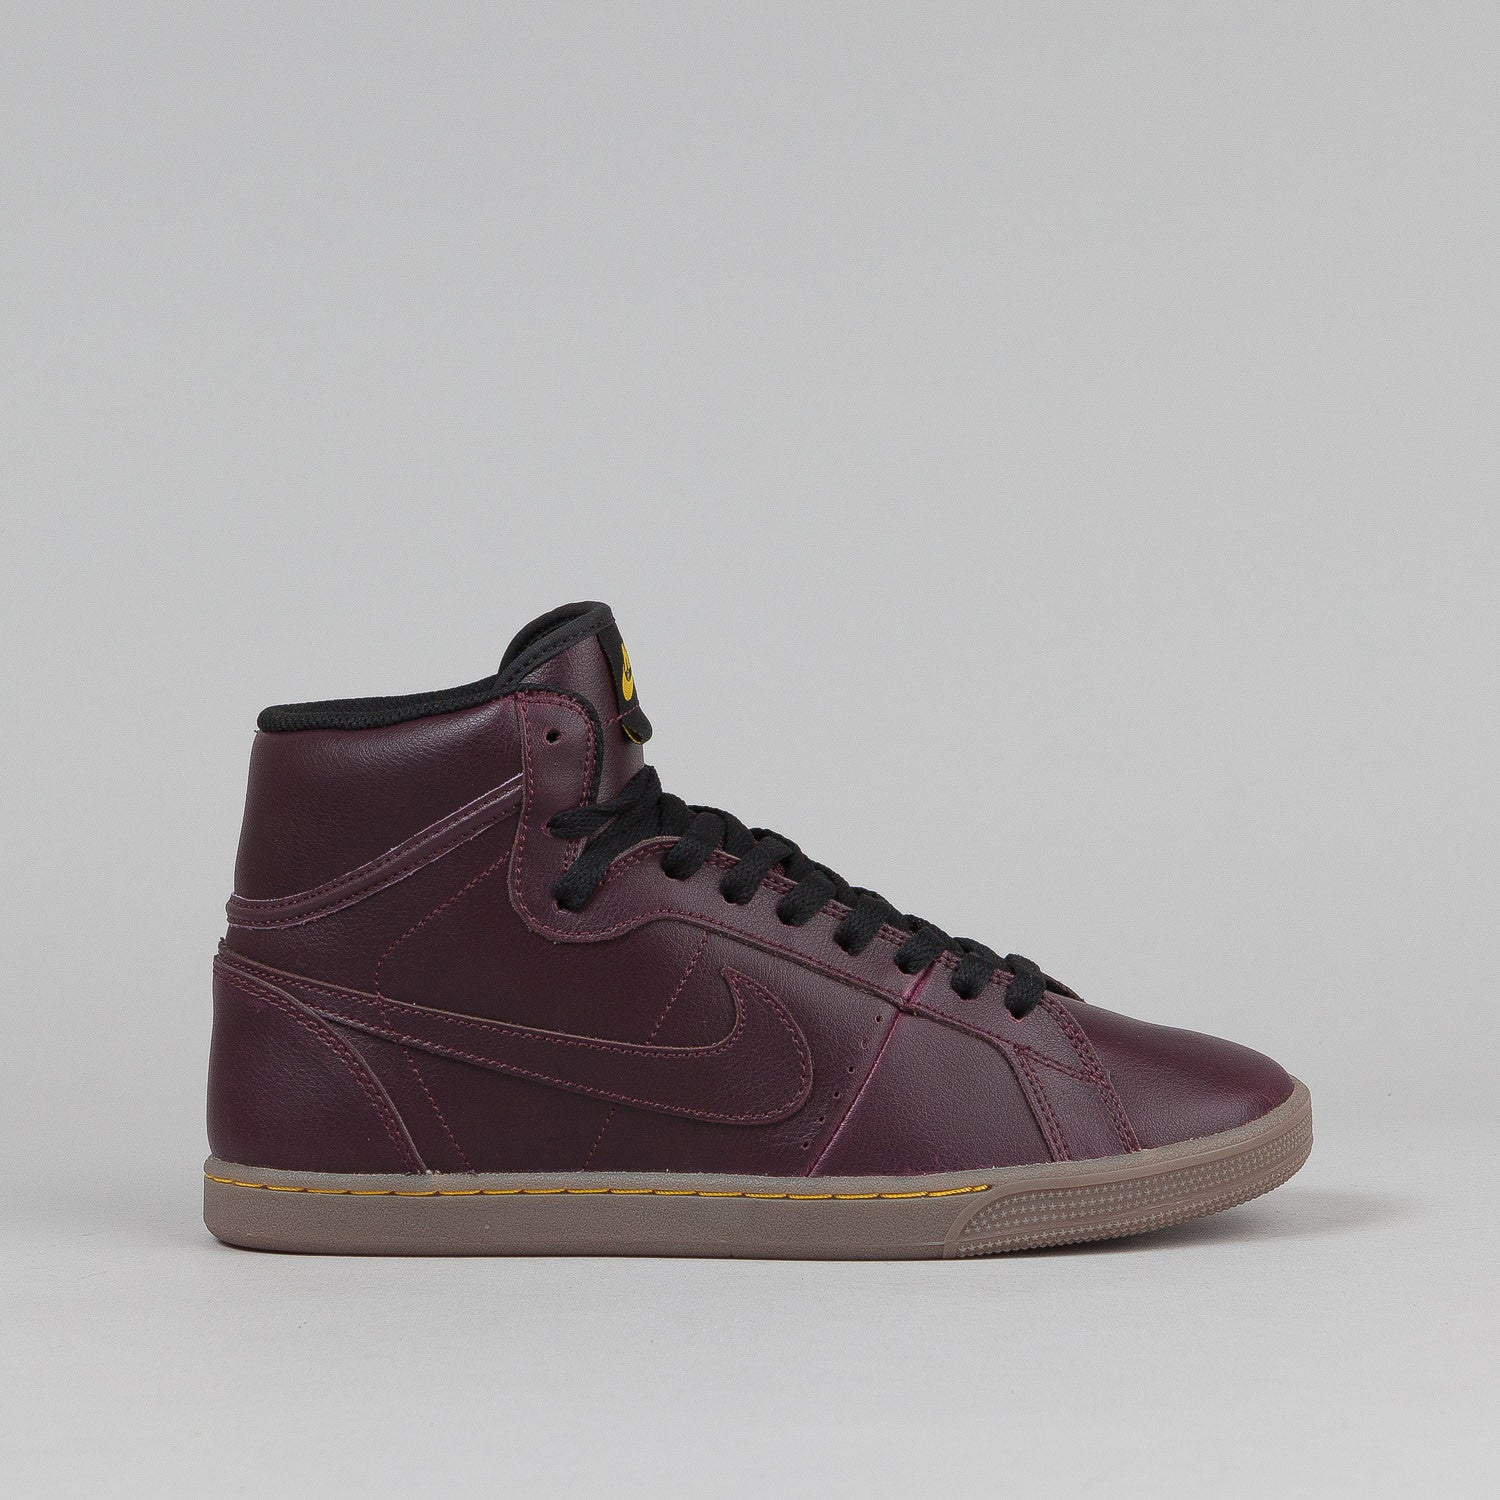 Nike SB Classic High QS Shoes